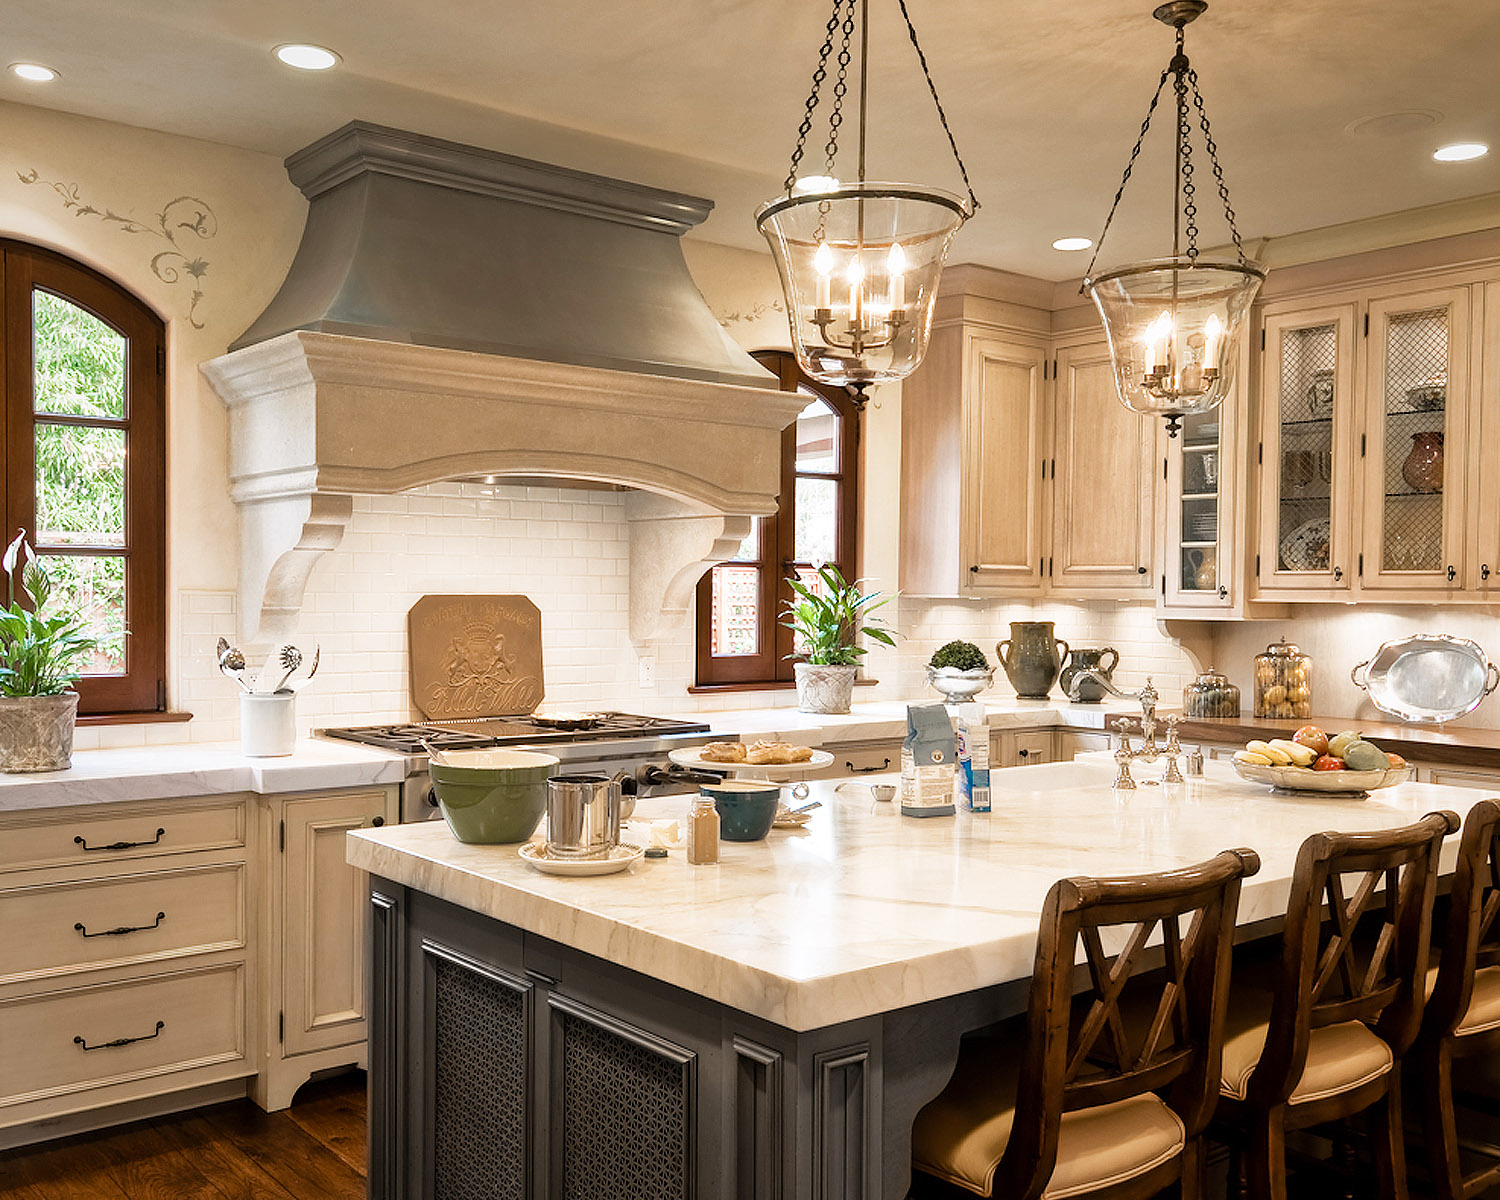 packardcabinetry custom kitchen cabinets Sands Point